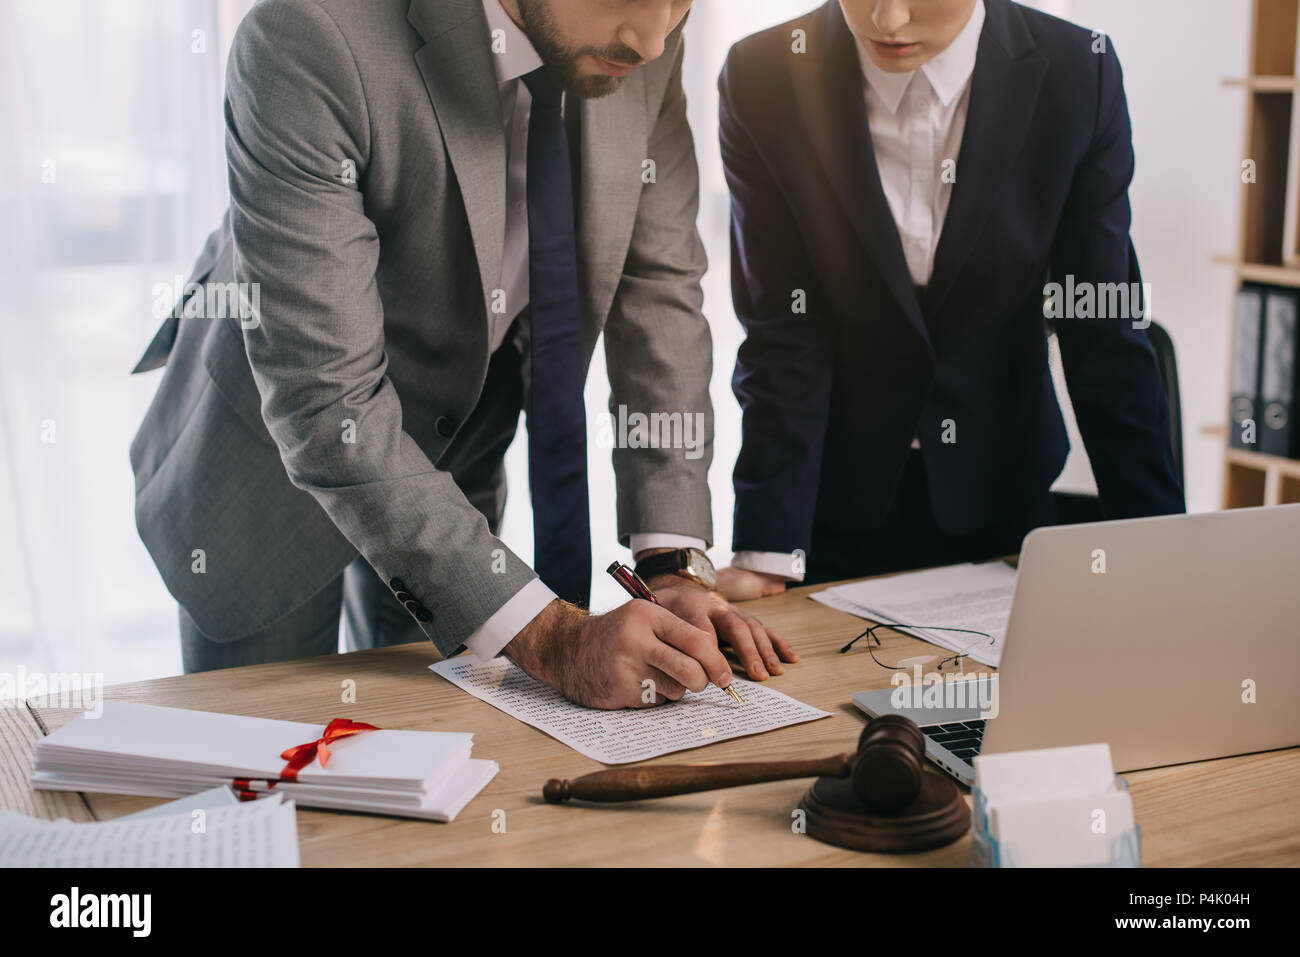 cropped shot of lawyers in suits working together on project at workplace with gavel and laptop in office - Stock Image